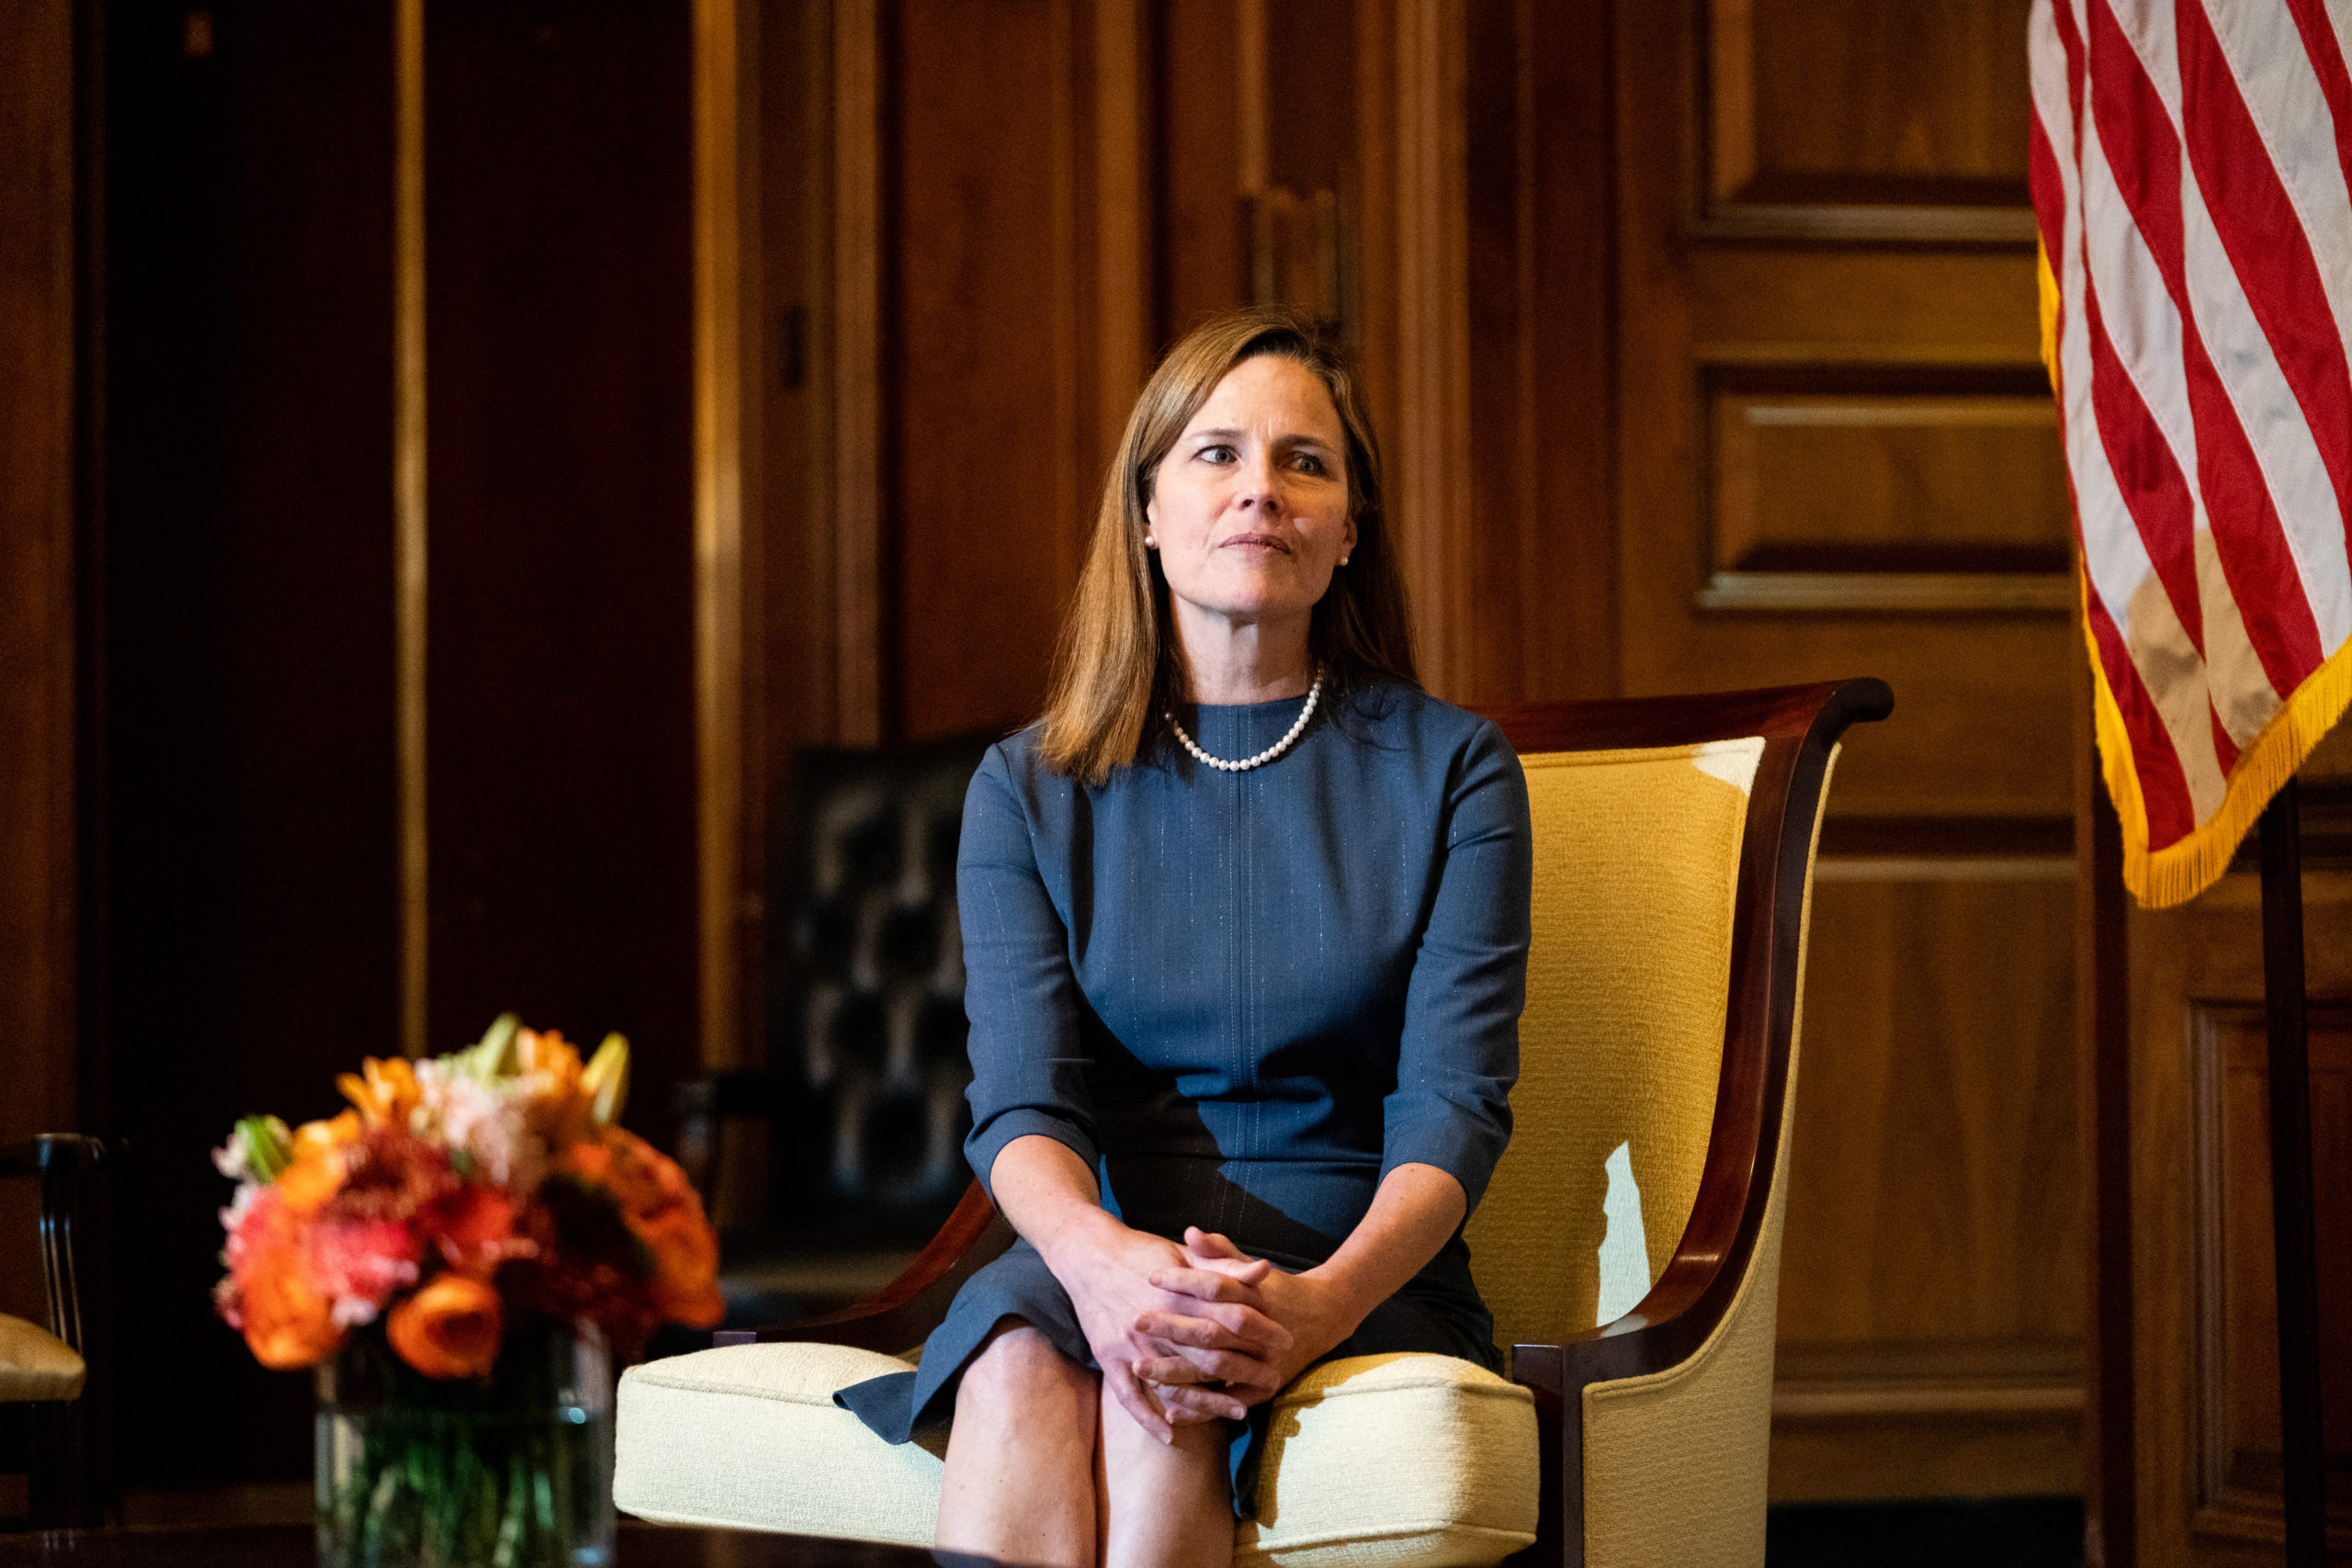 WASHINGTON, DC - SEPTEMBER 29: Seventh U.S. Circuit Court Judge Amy Coney Barrett, President Donald Trump's nominee for the U.S. Supreme Court, meets with Sen. Rick Scott (R-FL) as she begins a series of meetings to prepare for her confirmation hearing at the U.S. Capitol on September 29, 2020 in Washington, DC. (Photo by Anna Moneymaker-Pool/Getty Images)